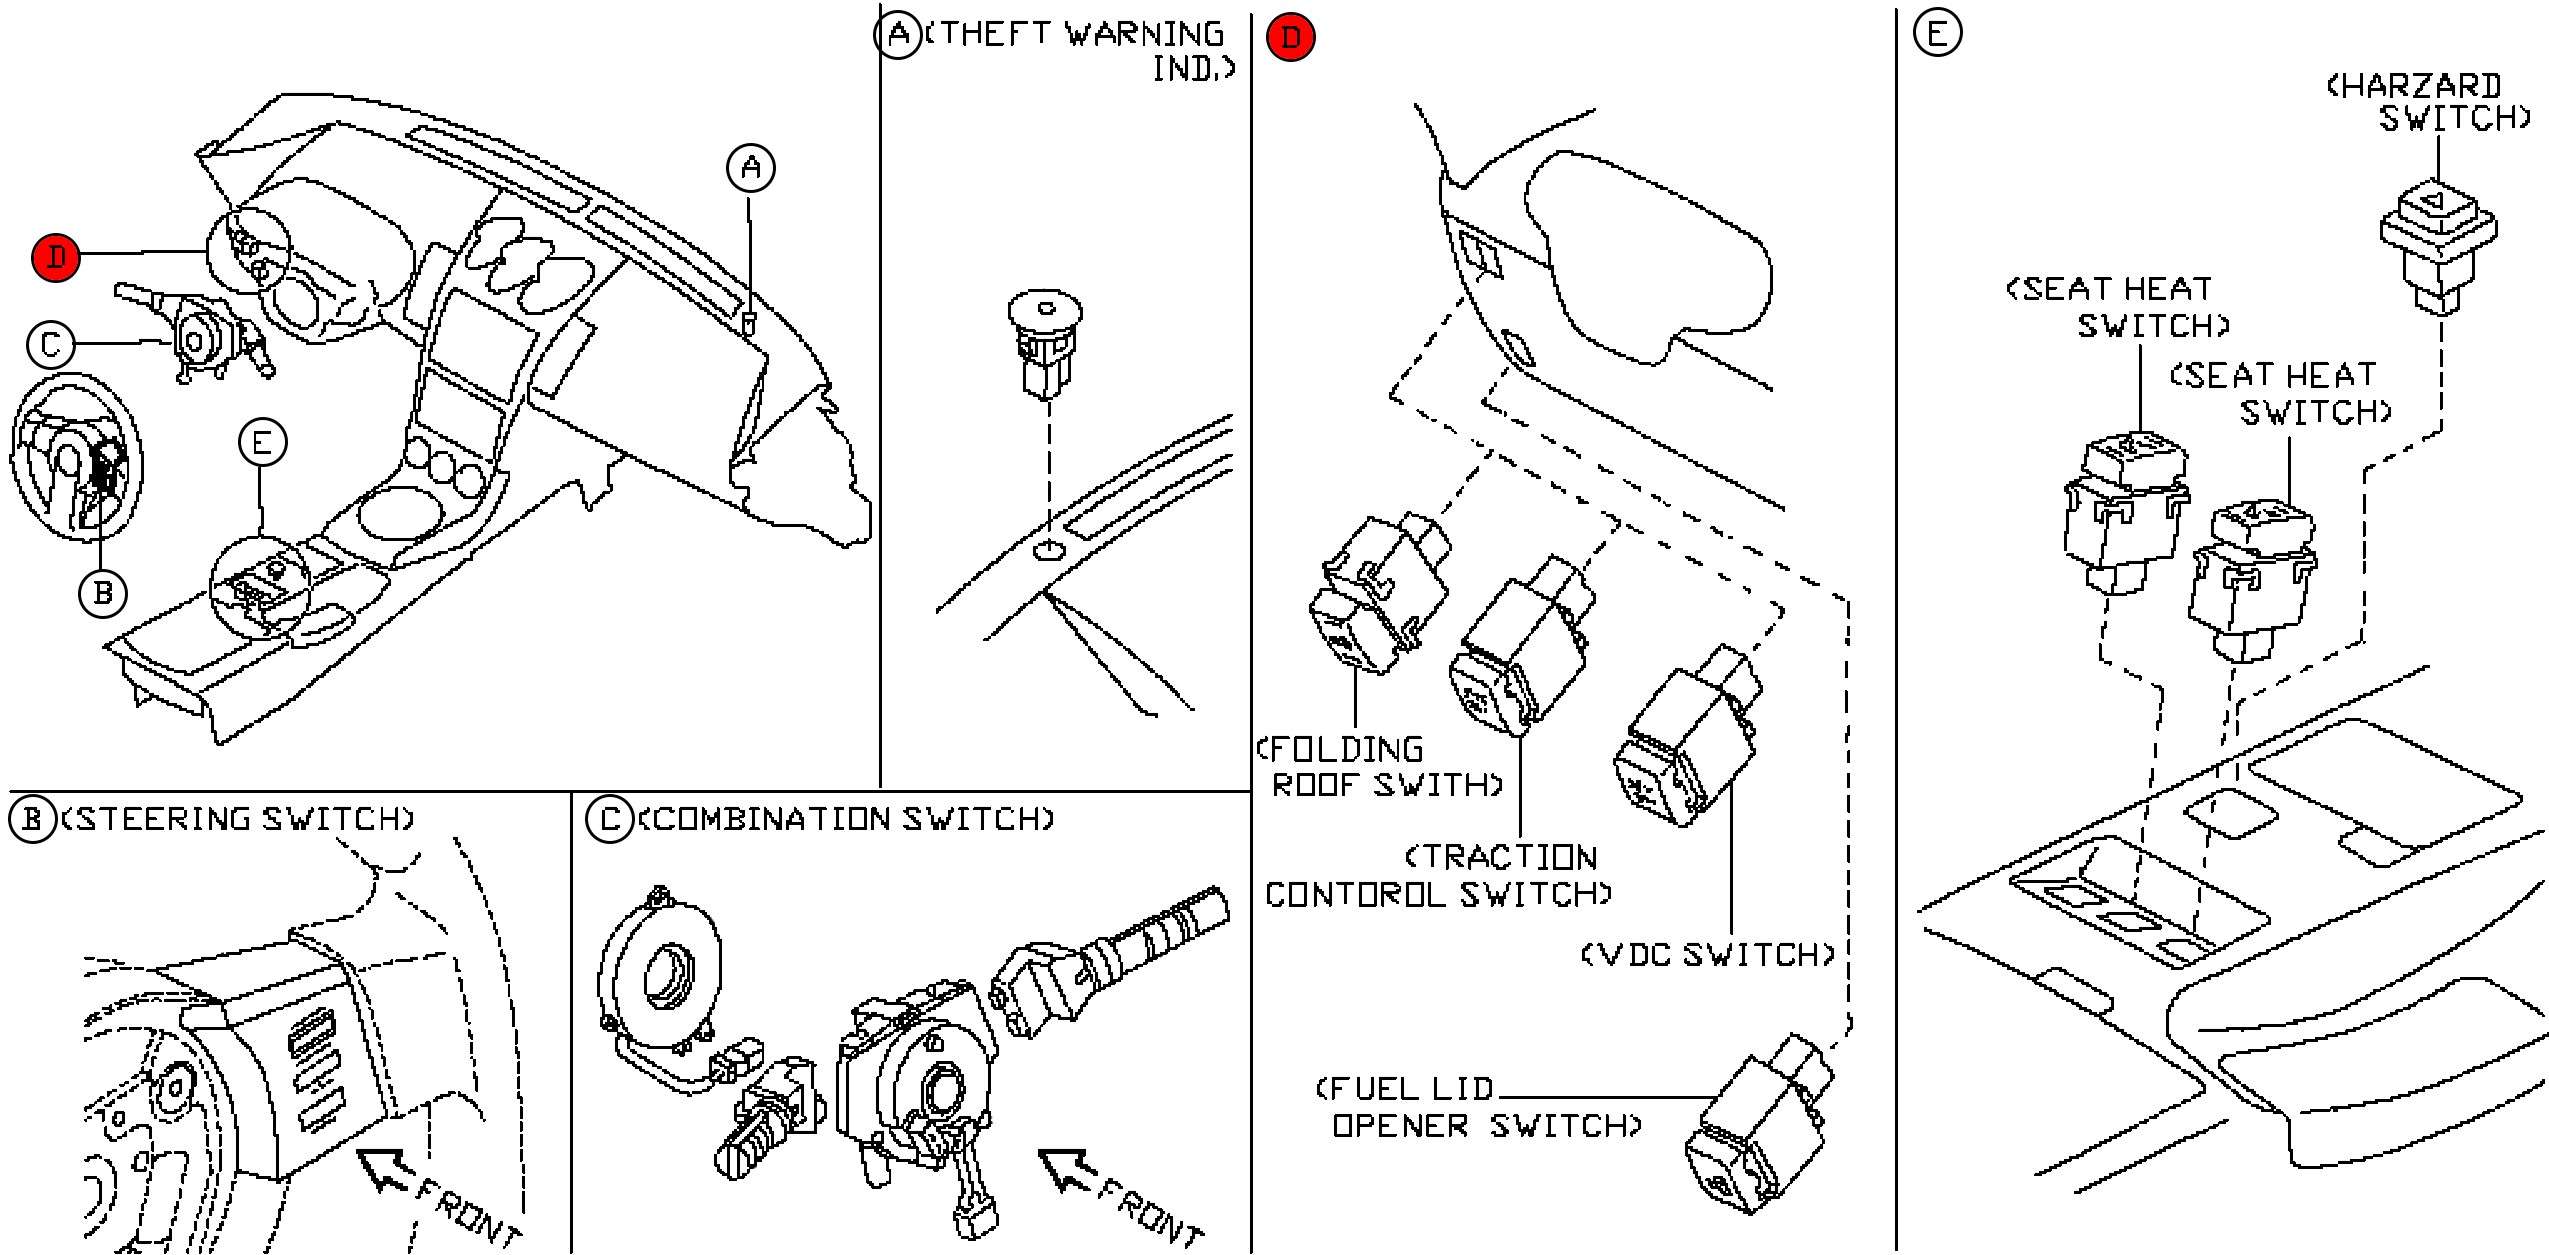 350z Suspension Diagram Oem 350z Vdc Vehicle Dynamic Control Switch Z1 Motorsports Of 350z Suspension Diagram Wiring Diagram 2005 350z